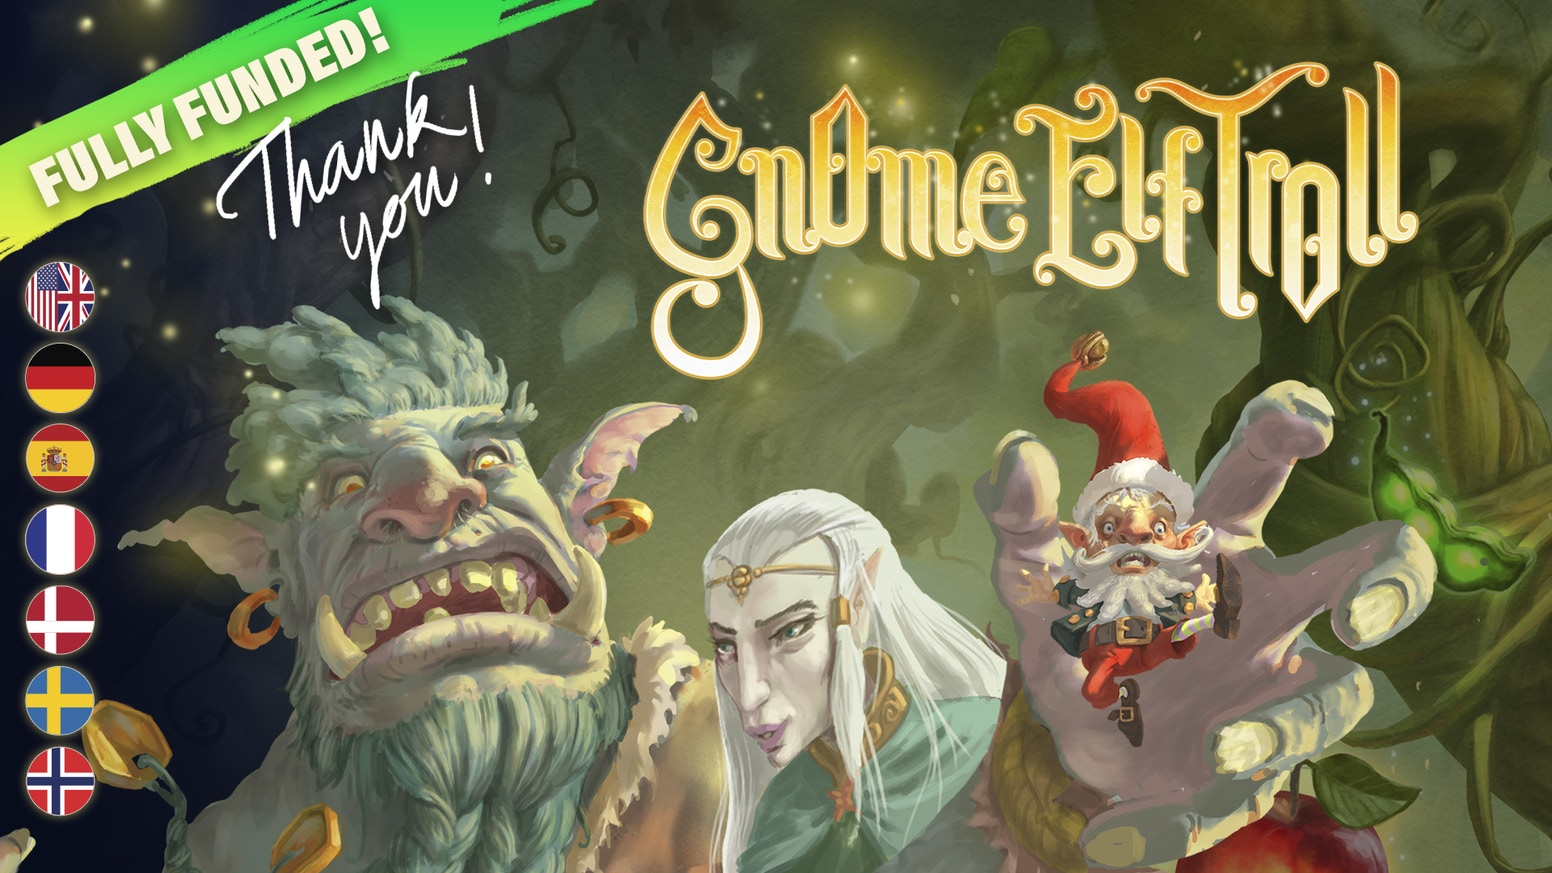 A Fun and Quick Board Game with Gnomes, Elves and Trolls in the Garden of MagicFor inquires about sales and other questions about the game, please write us directly on,info AT notthebox.dk